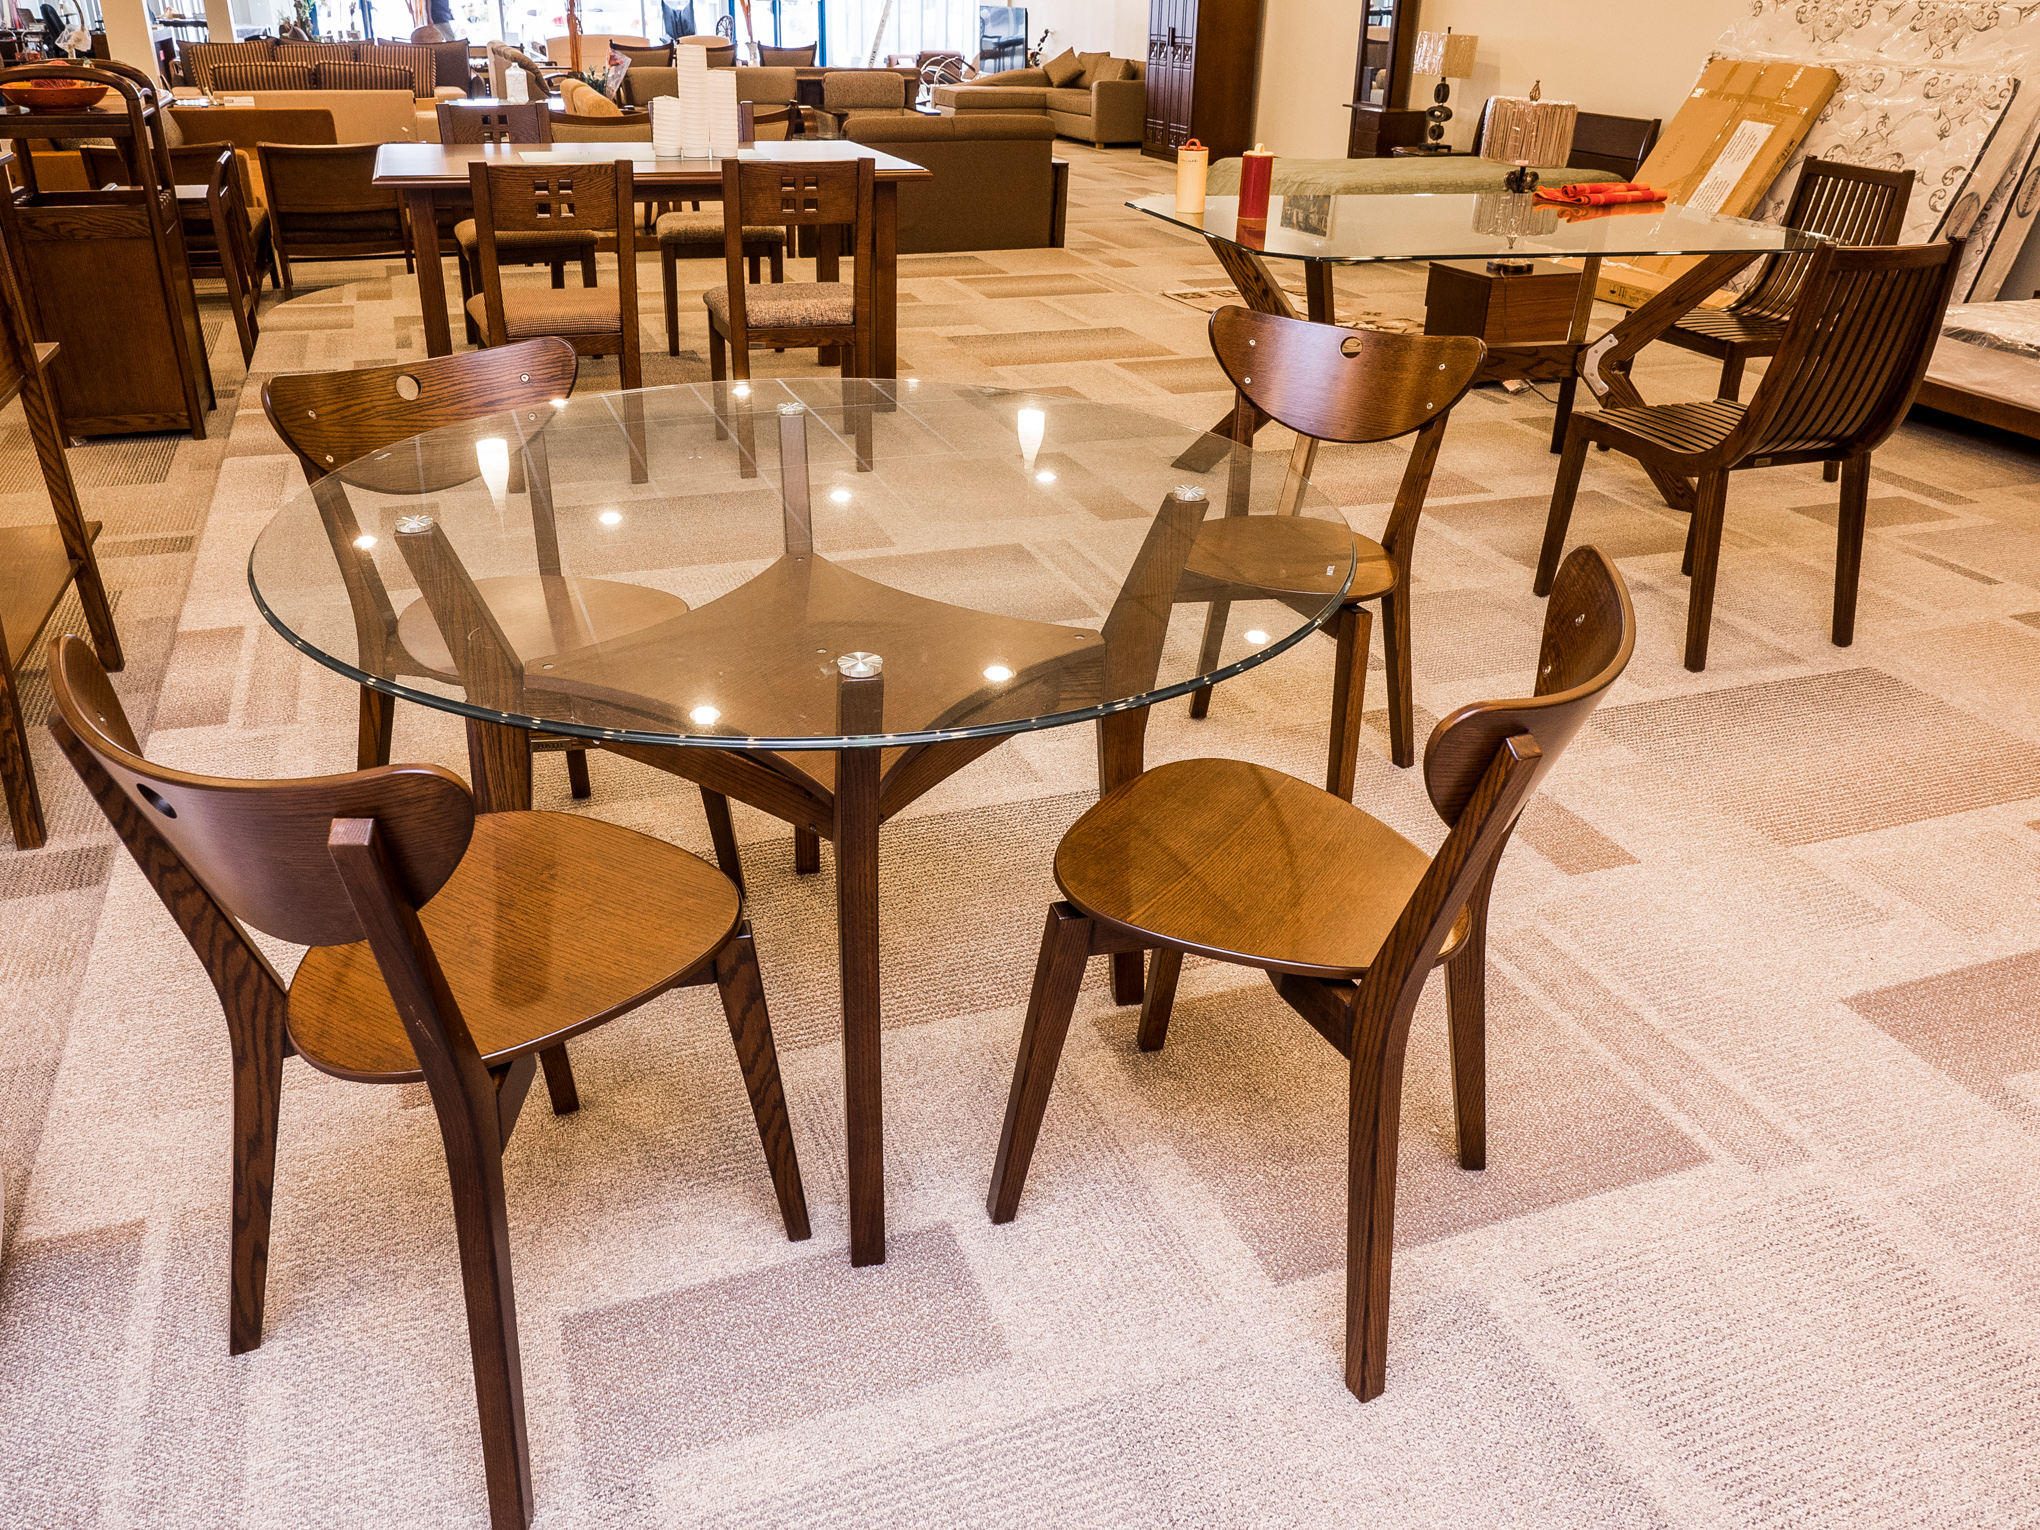 Model: 170-2-1-77. Round glass table with 4 chair